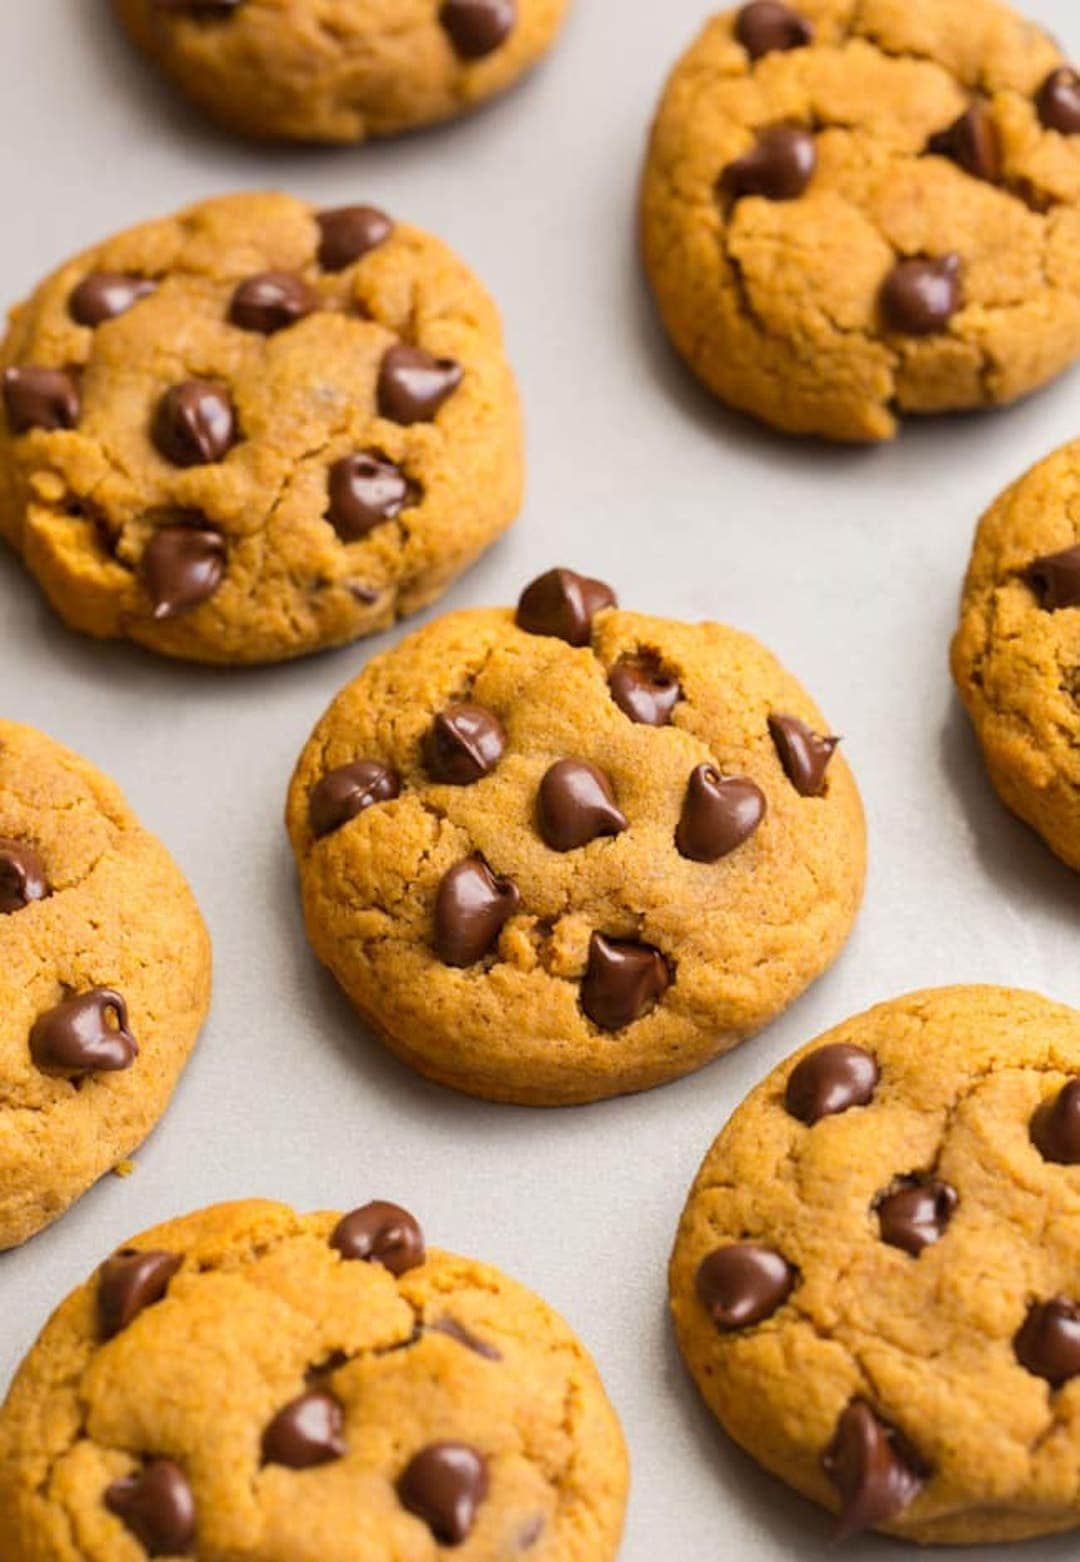 pumpkin chocolate chip cookies on a baking tray